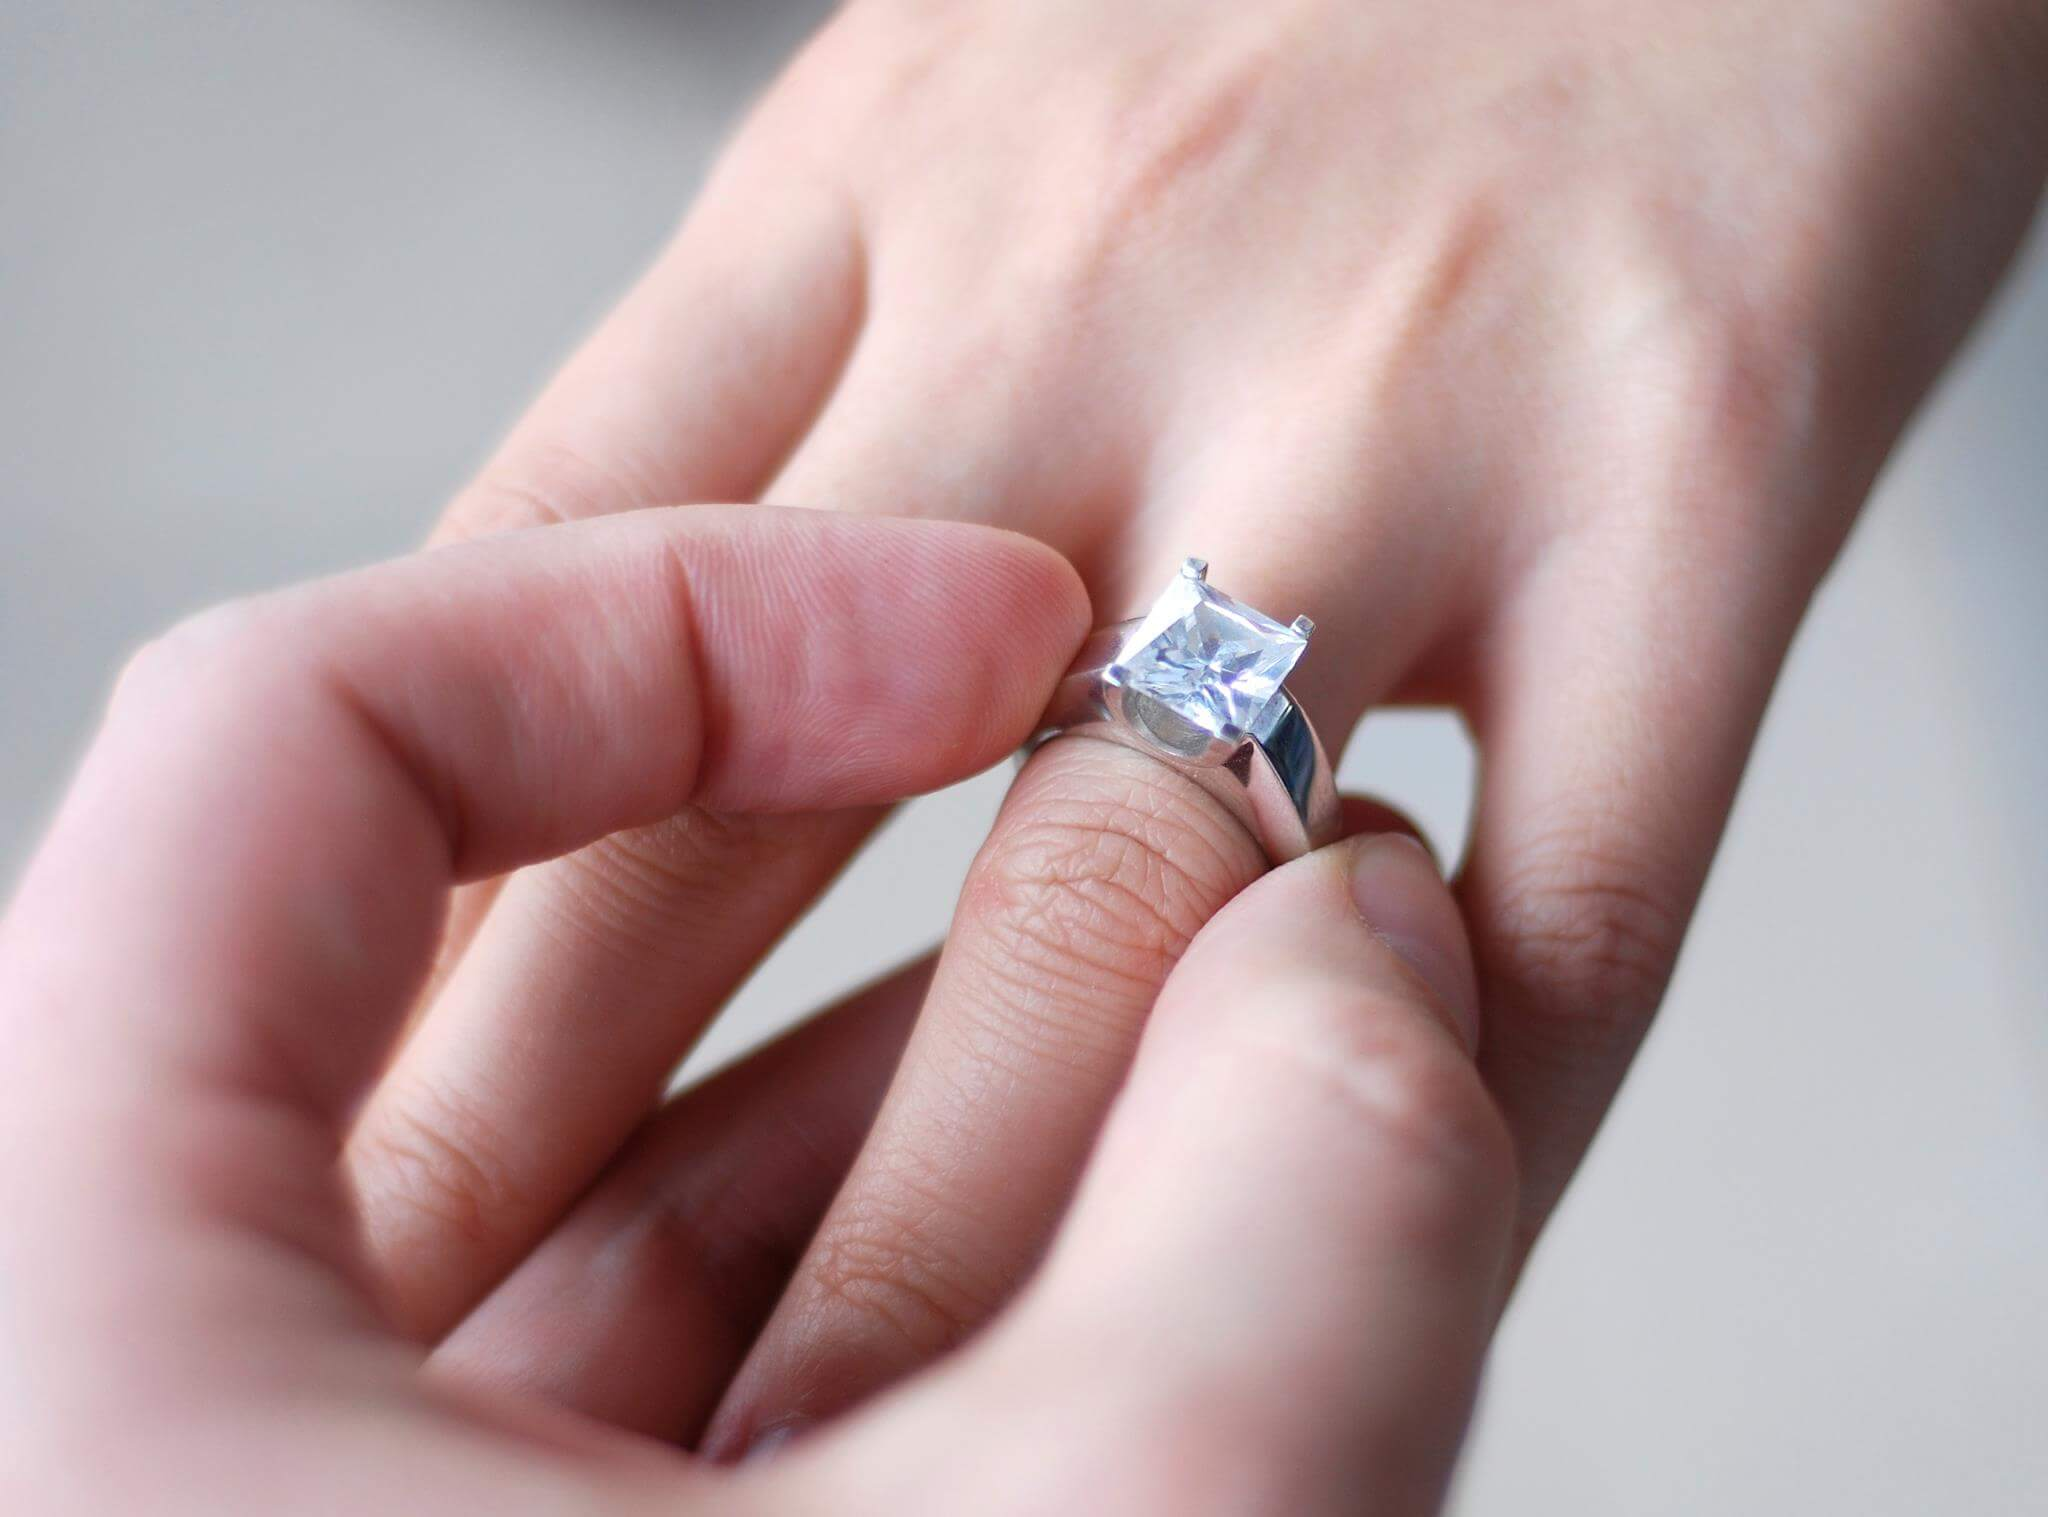 How To Find Your Partners Ring Size Without Them Knowing